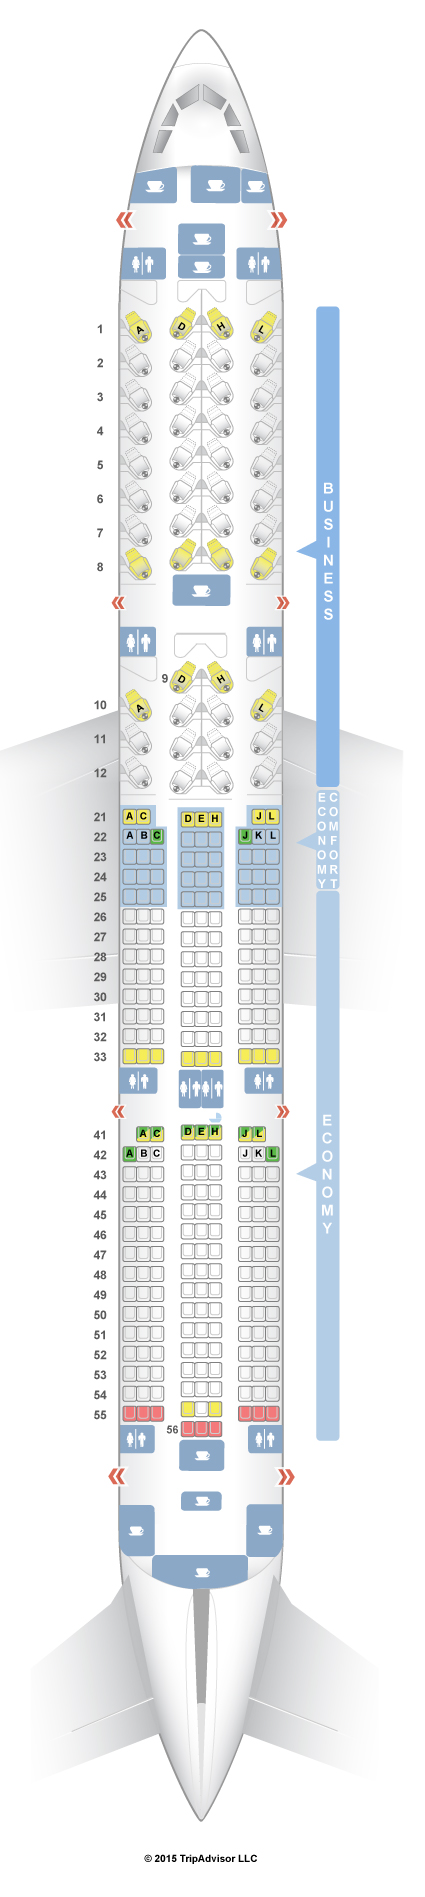 A350 Seat Map Cathay Pacific A350 Economy Seat Map   Best Description About